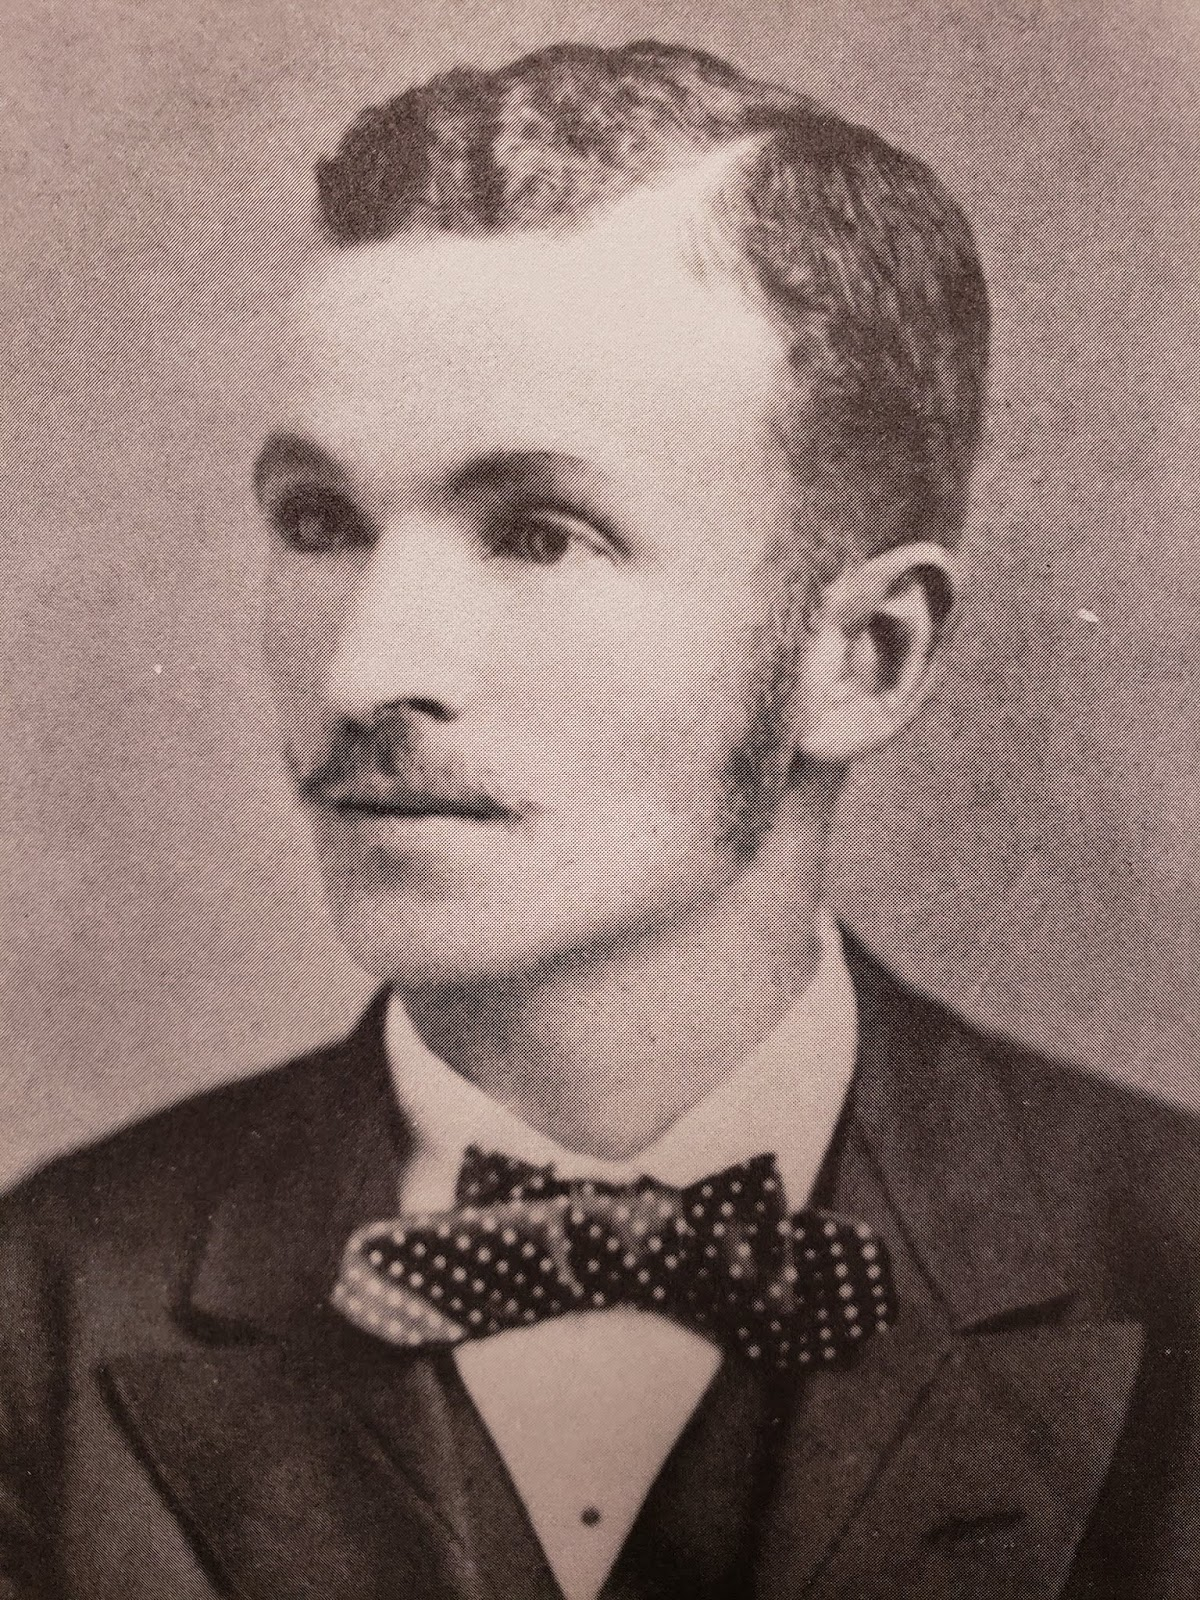 Charles Chesnutt: age 21 in 1879, just before taking over as principal of State Colored Normal School in Fayetteville.